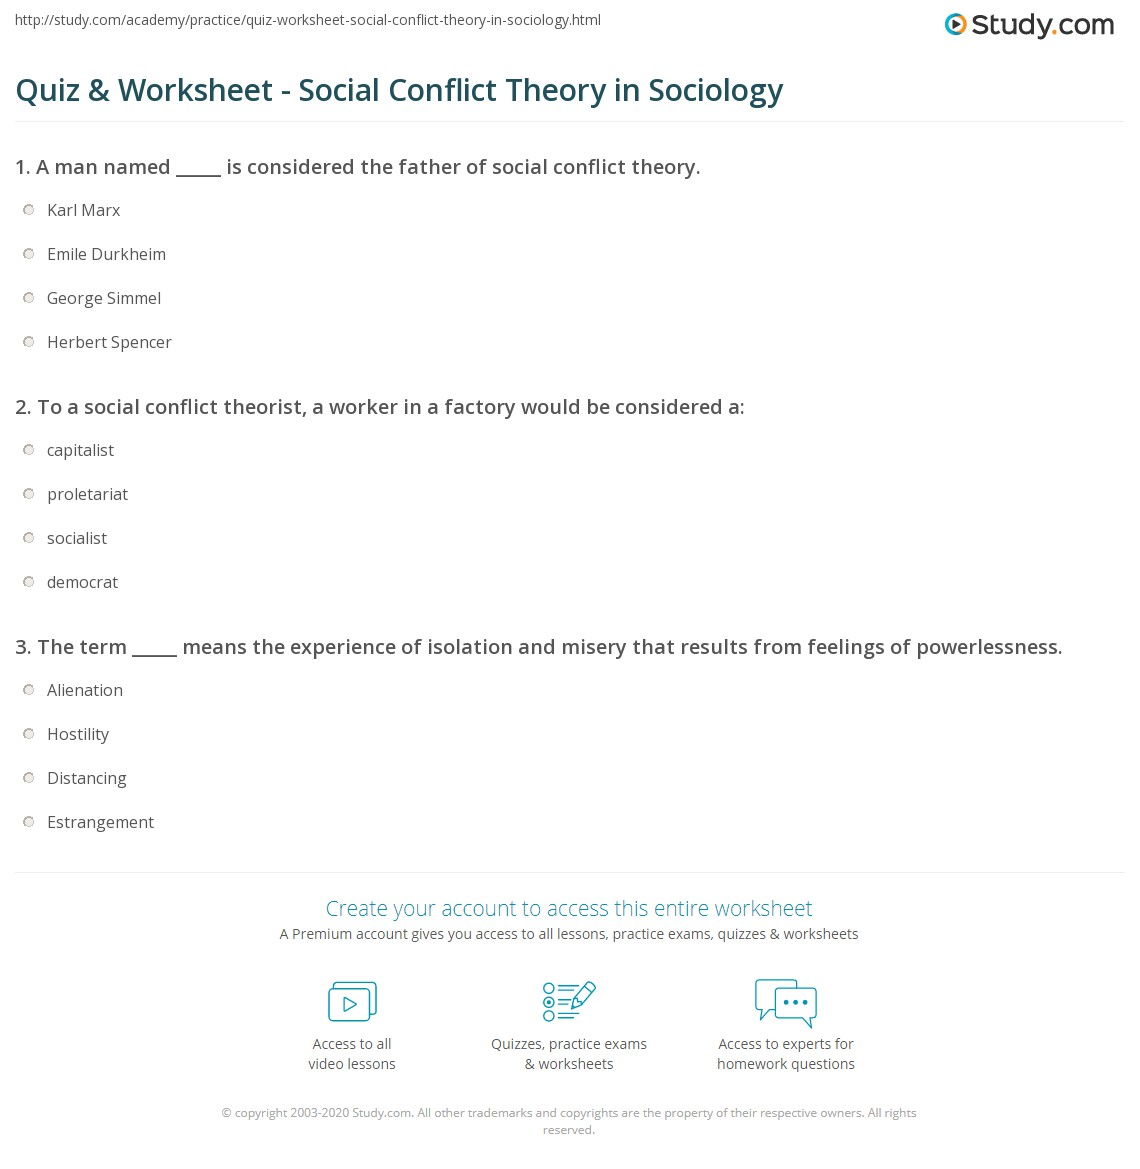 Worksheets For Sociology : Quiz worksheet social conflict theory in sociology